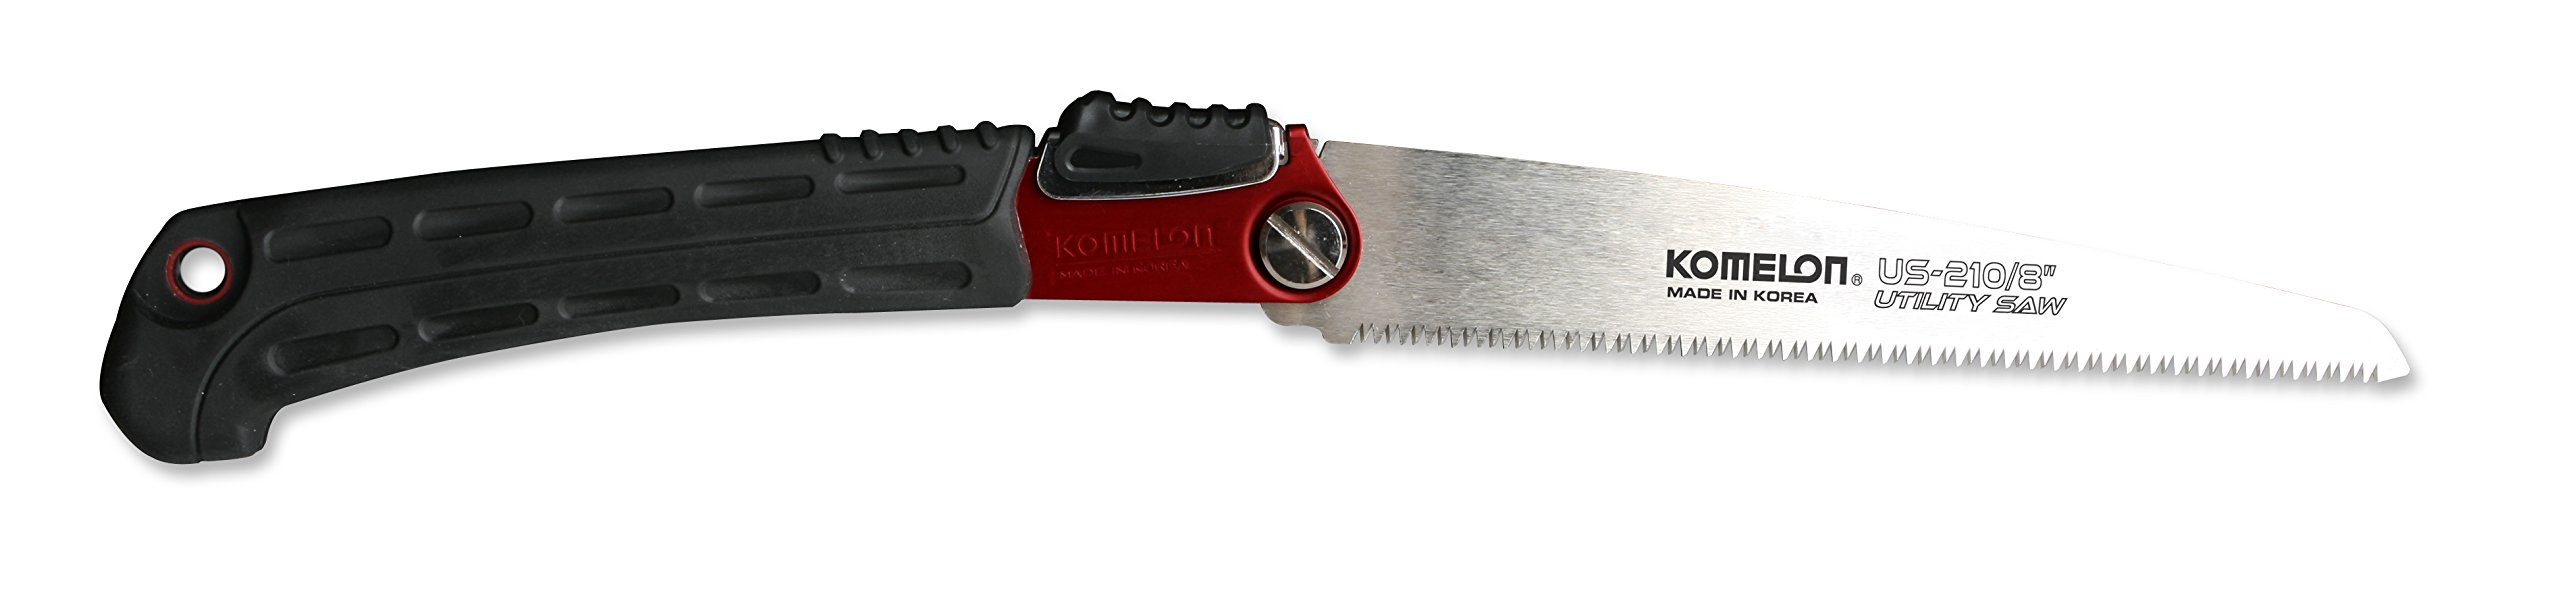 Komelon US-210 Utility Folding Saw, 8'', Red Aluminum